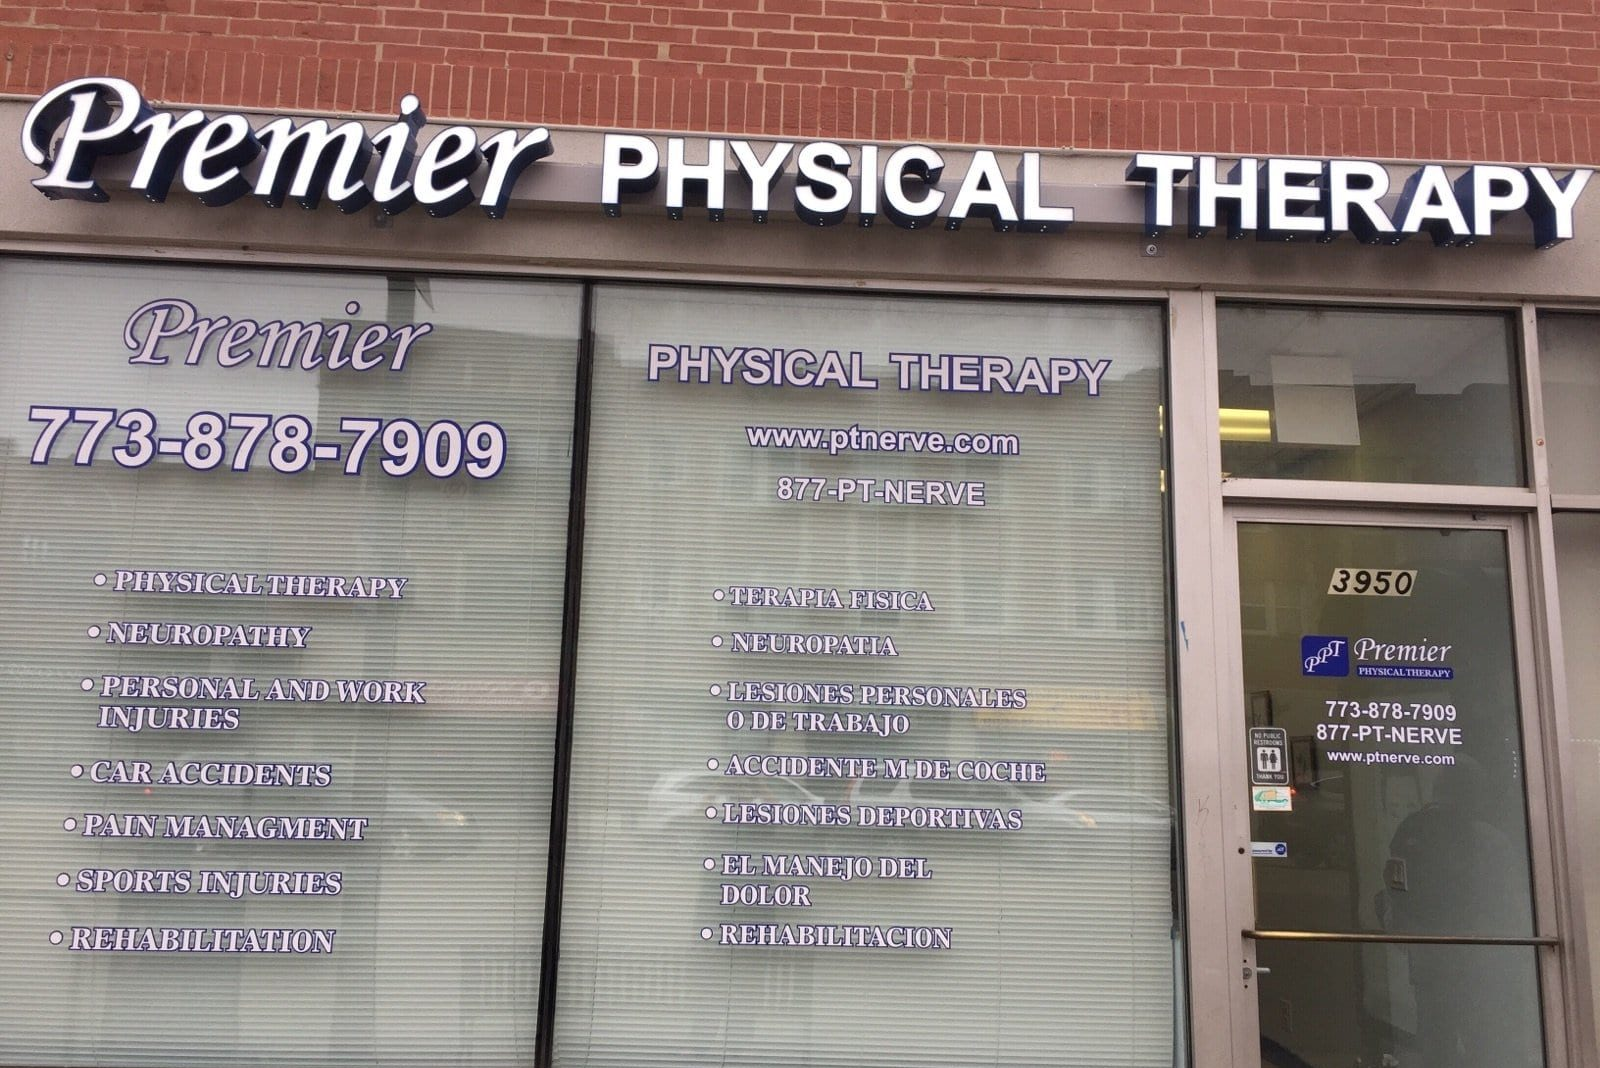 Premier Physical Therapy Ashland Location